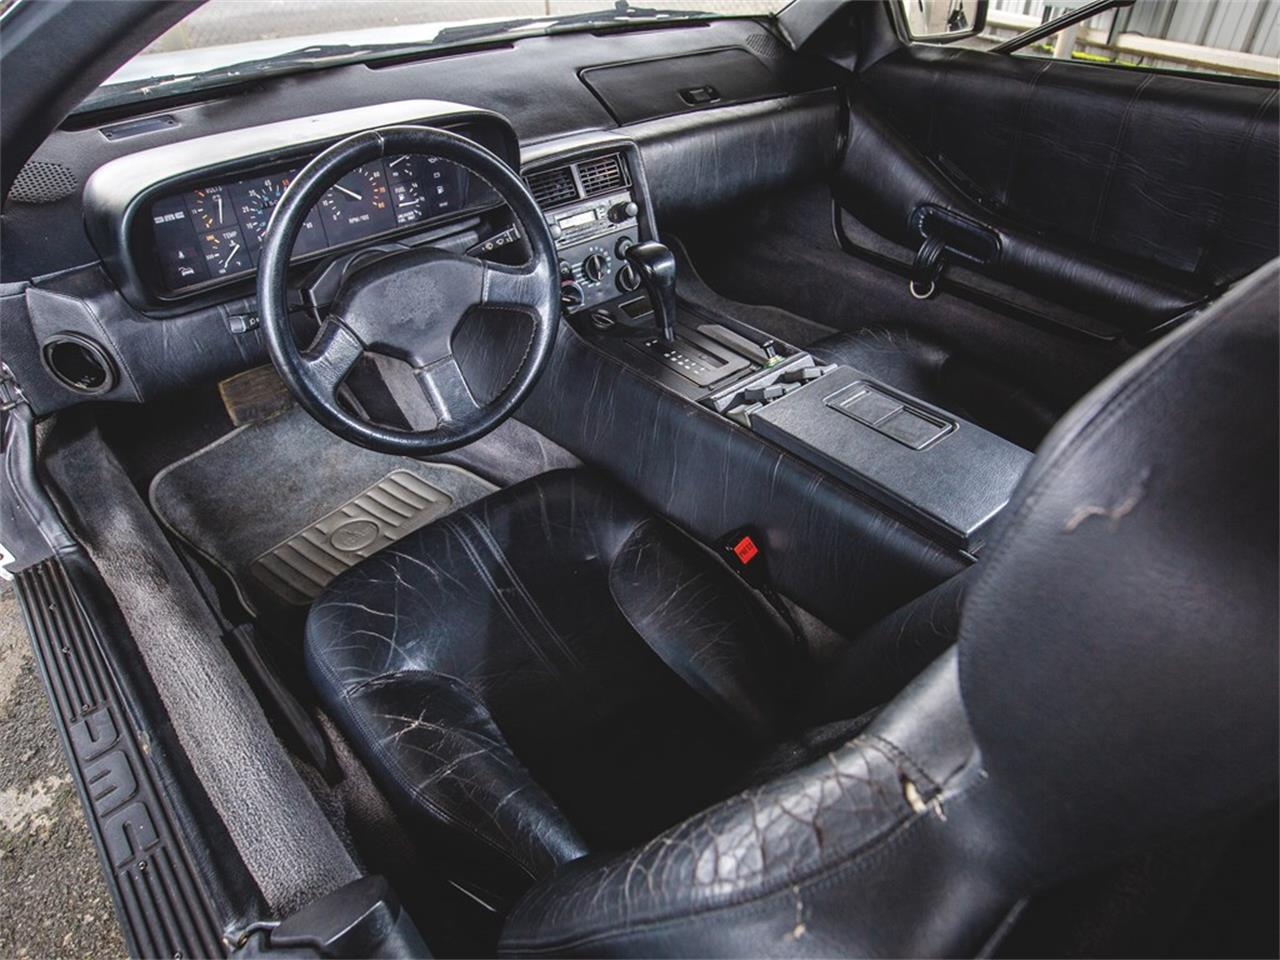 Large Picture of '81 DeLorean DMC-12 Offered by RM Sotheby's - Q55A